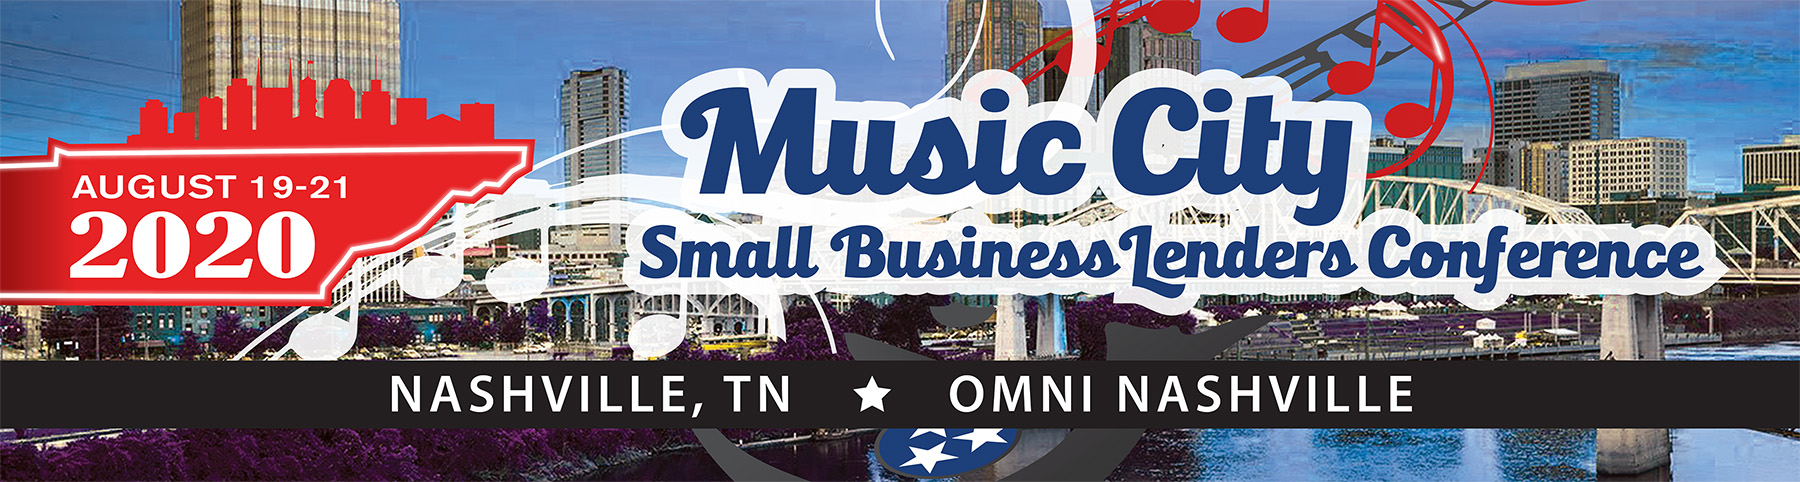 Music City Small Business Lenders Conference 2020